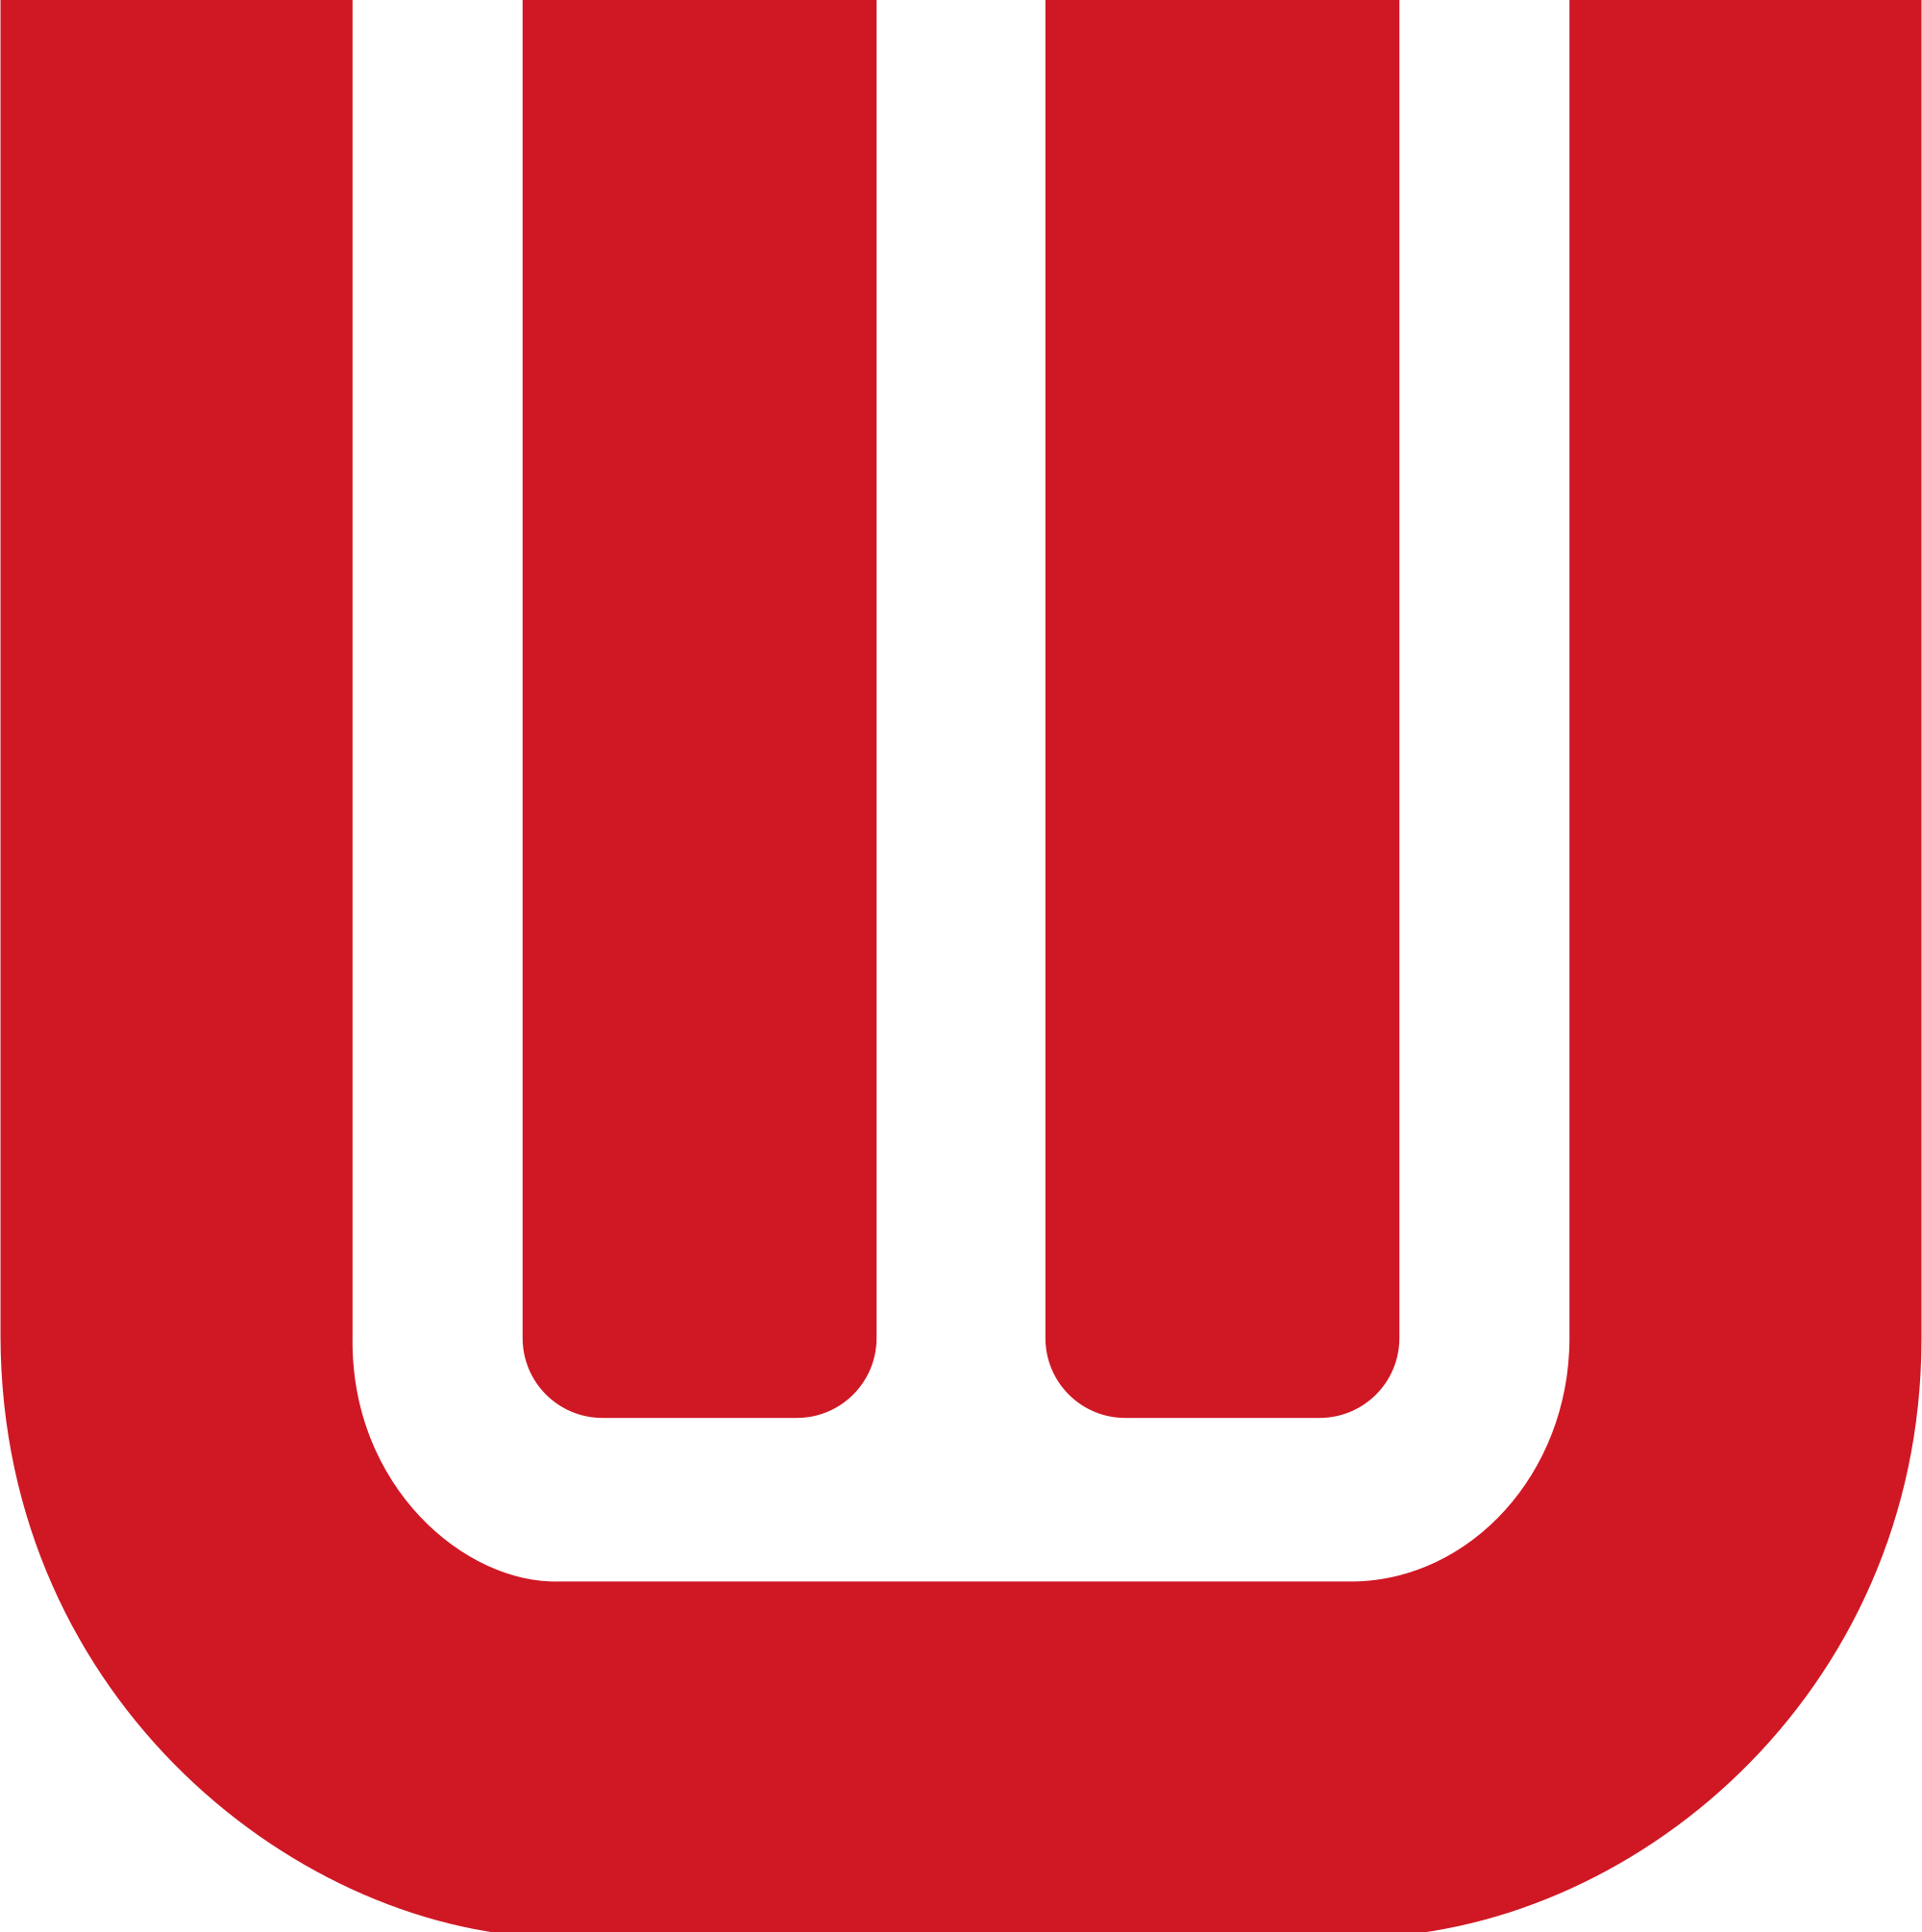 Wisconsin badgers football clipart vector library library University of Wisconsin Marching Band - Wikipedia vector library library